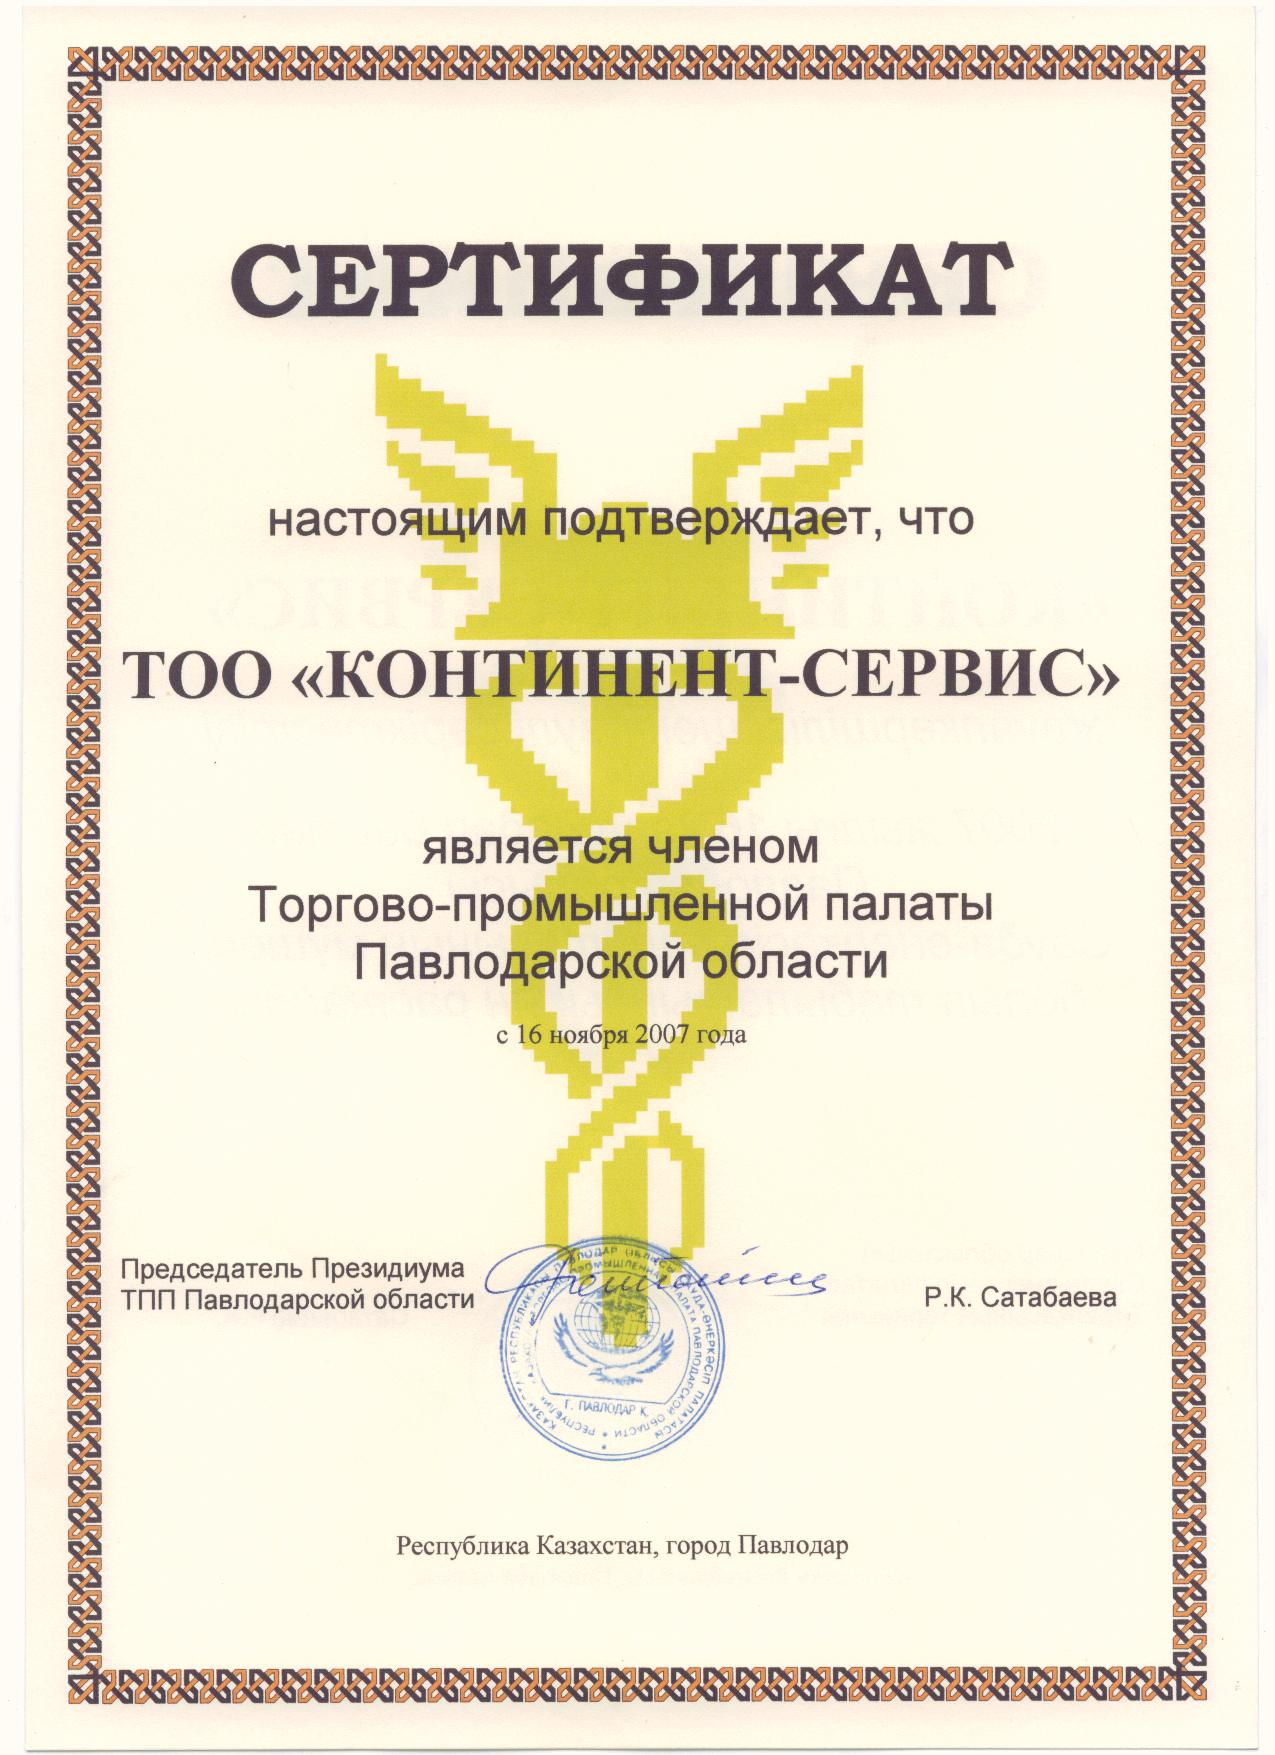 Certificate of Chamber of Commerce